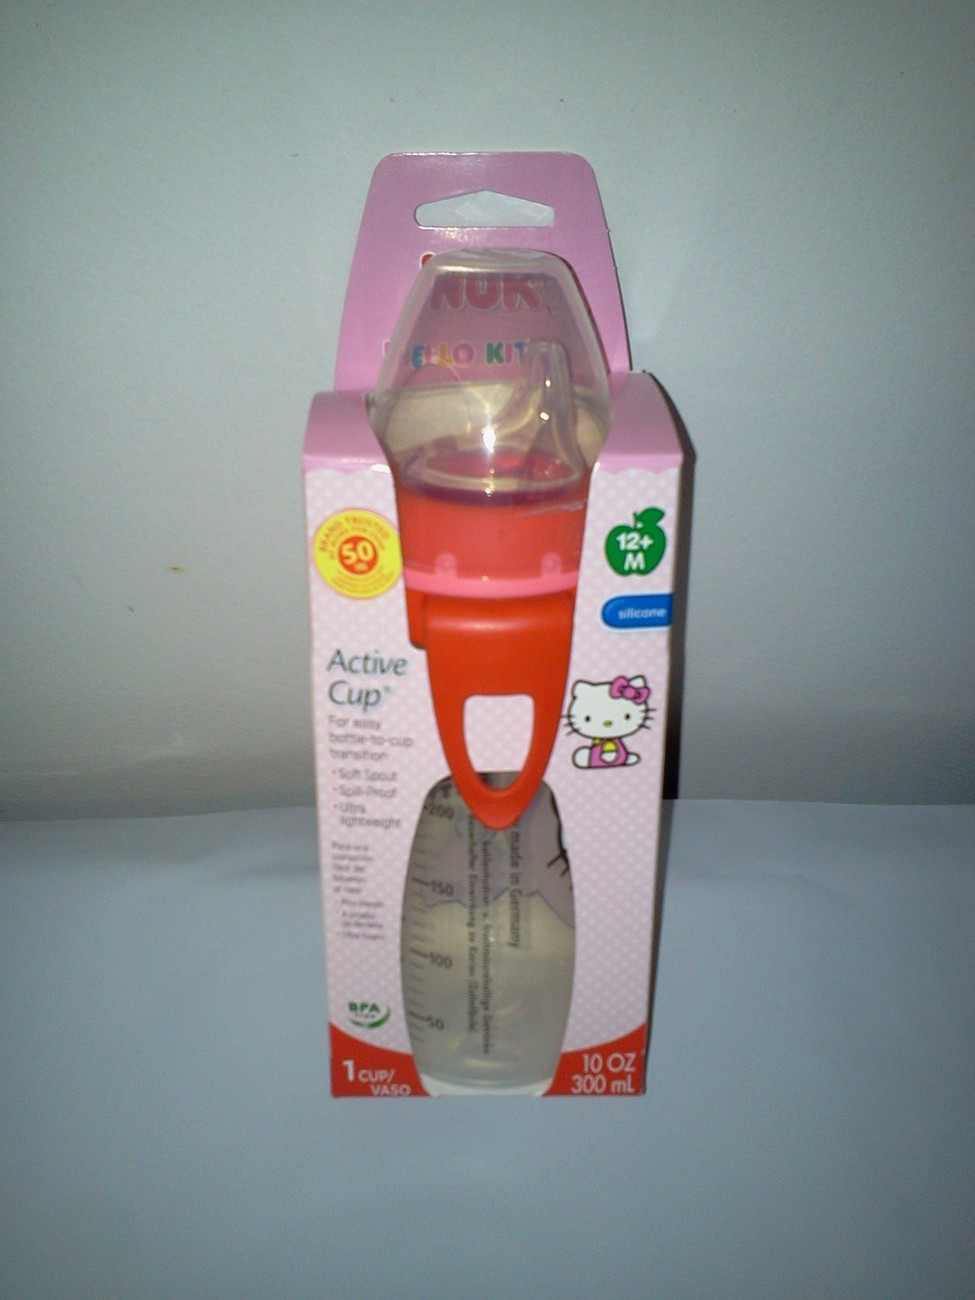 nuk_hello_kitty_active_sippy_cup_in_pack